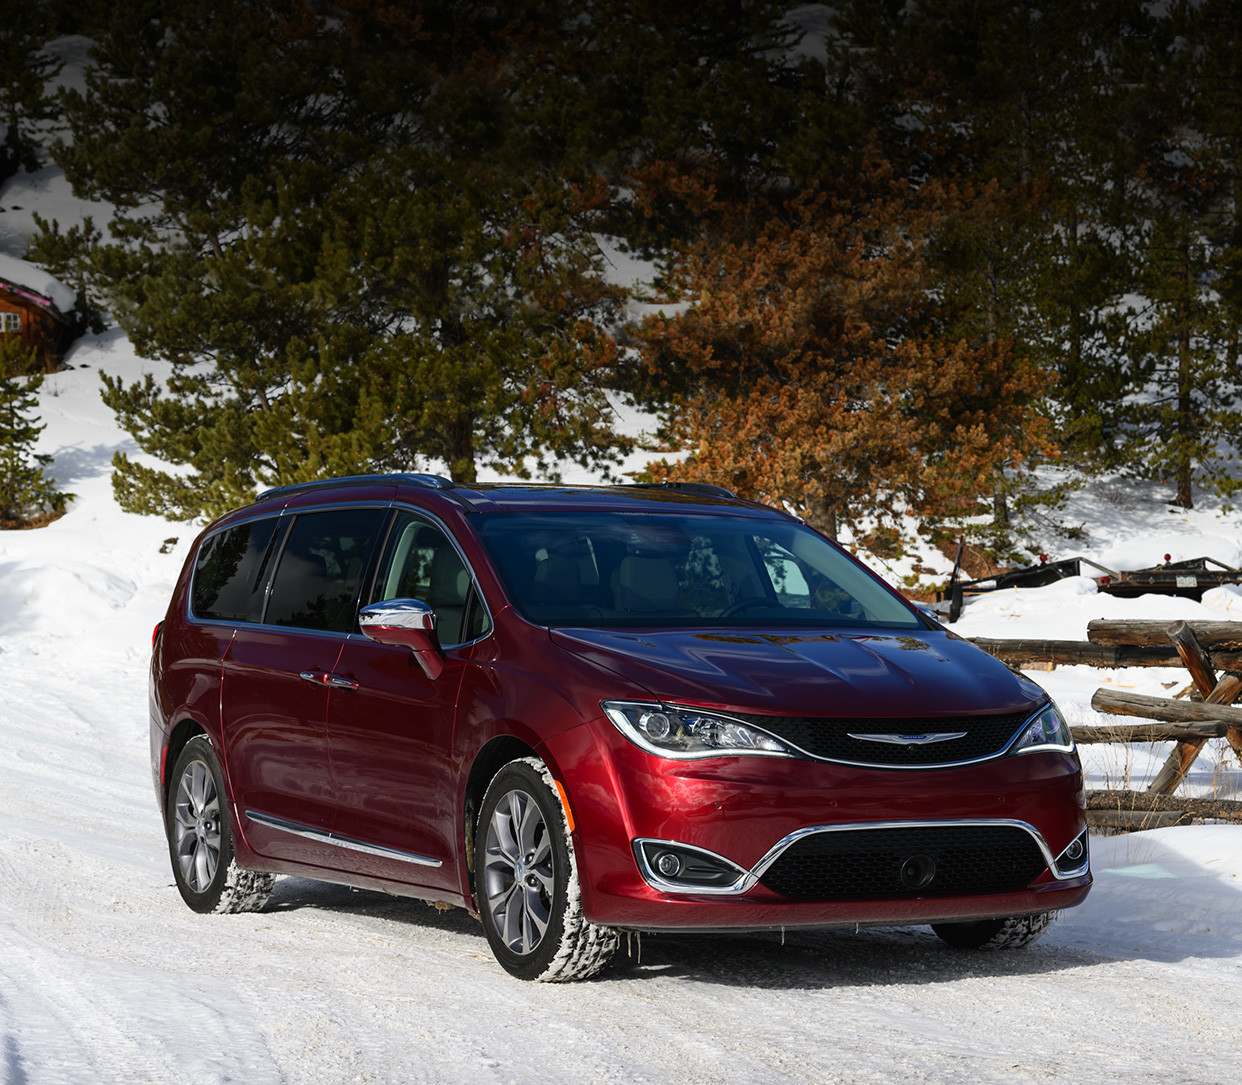 Front view of the red 2020 Chrysler Pacifica parked in a snowy forest next to a ski chalet